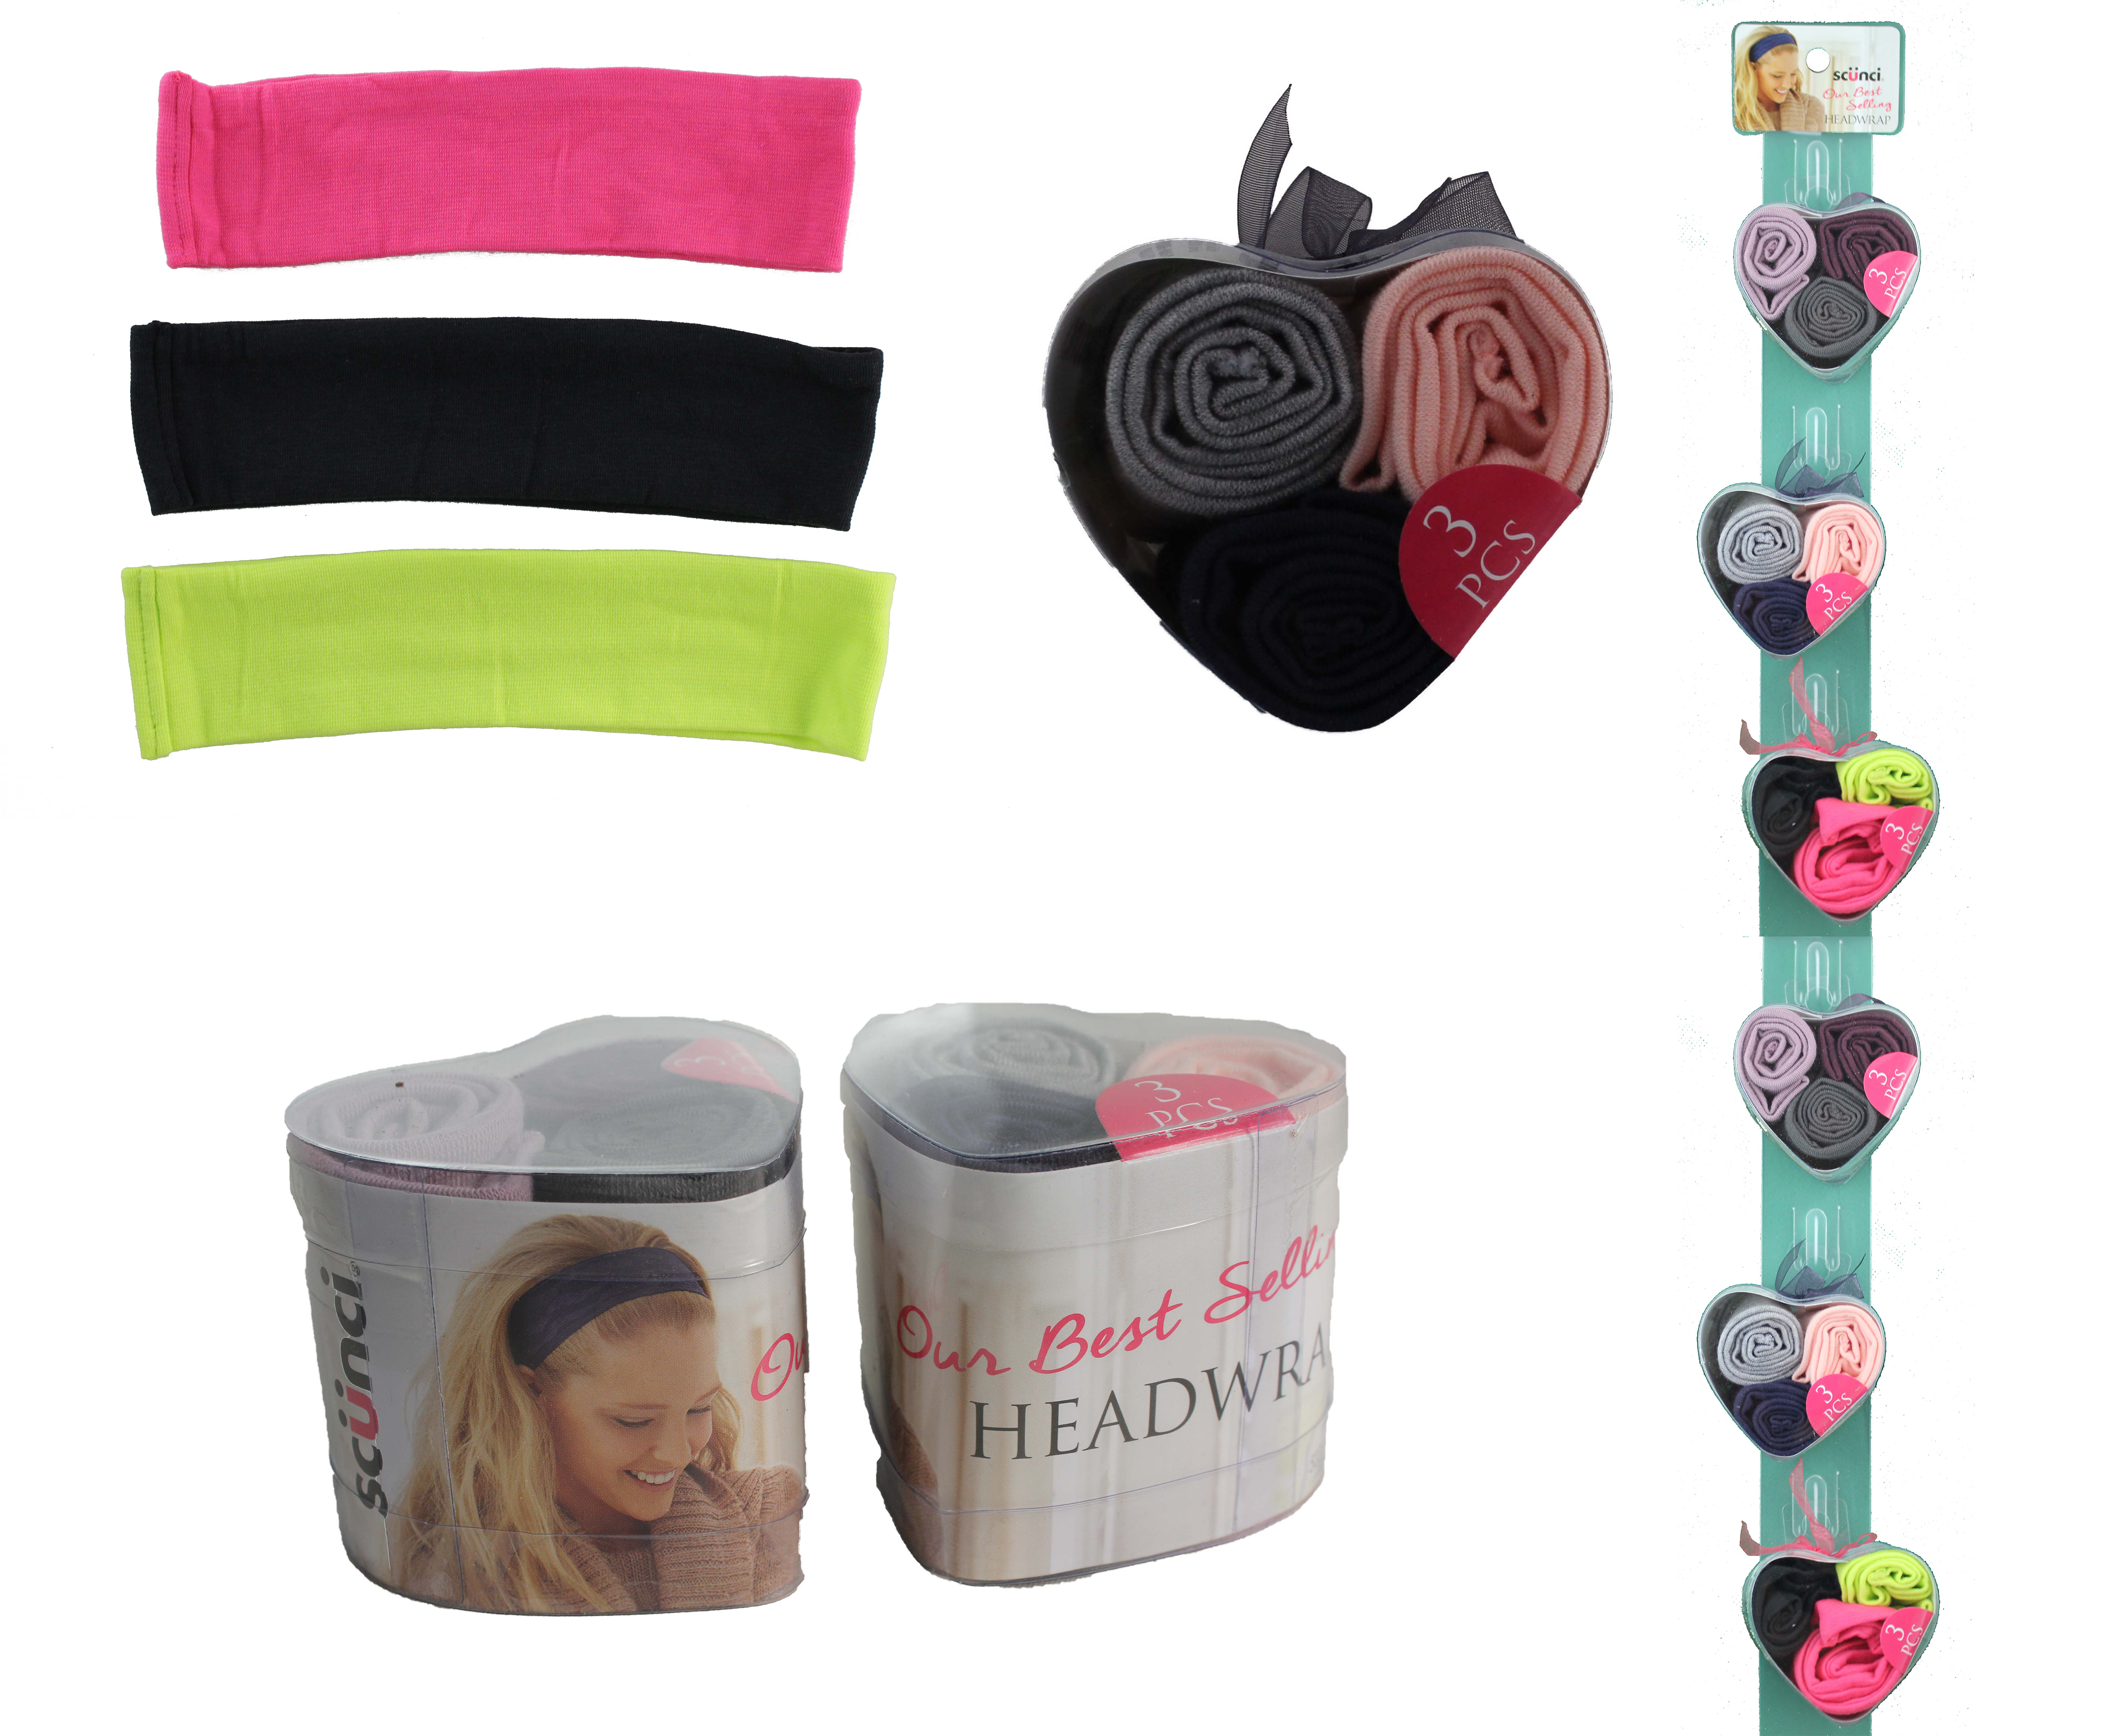 Scunci 3pc Headwraps in Heart